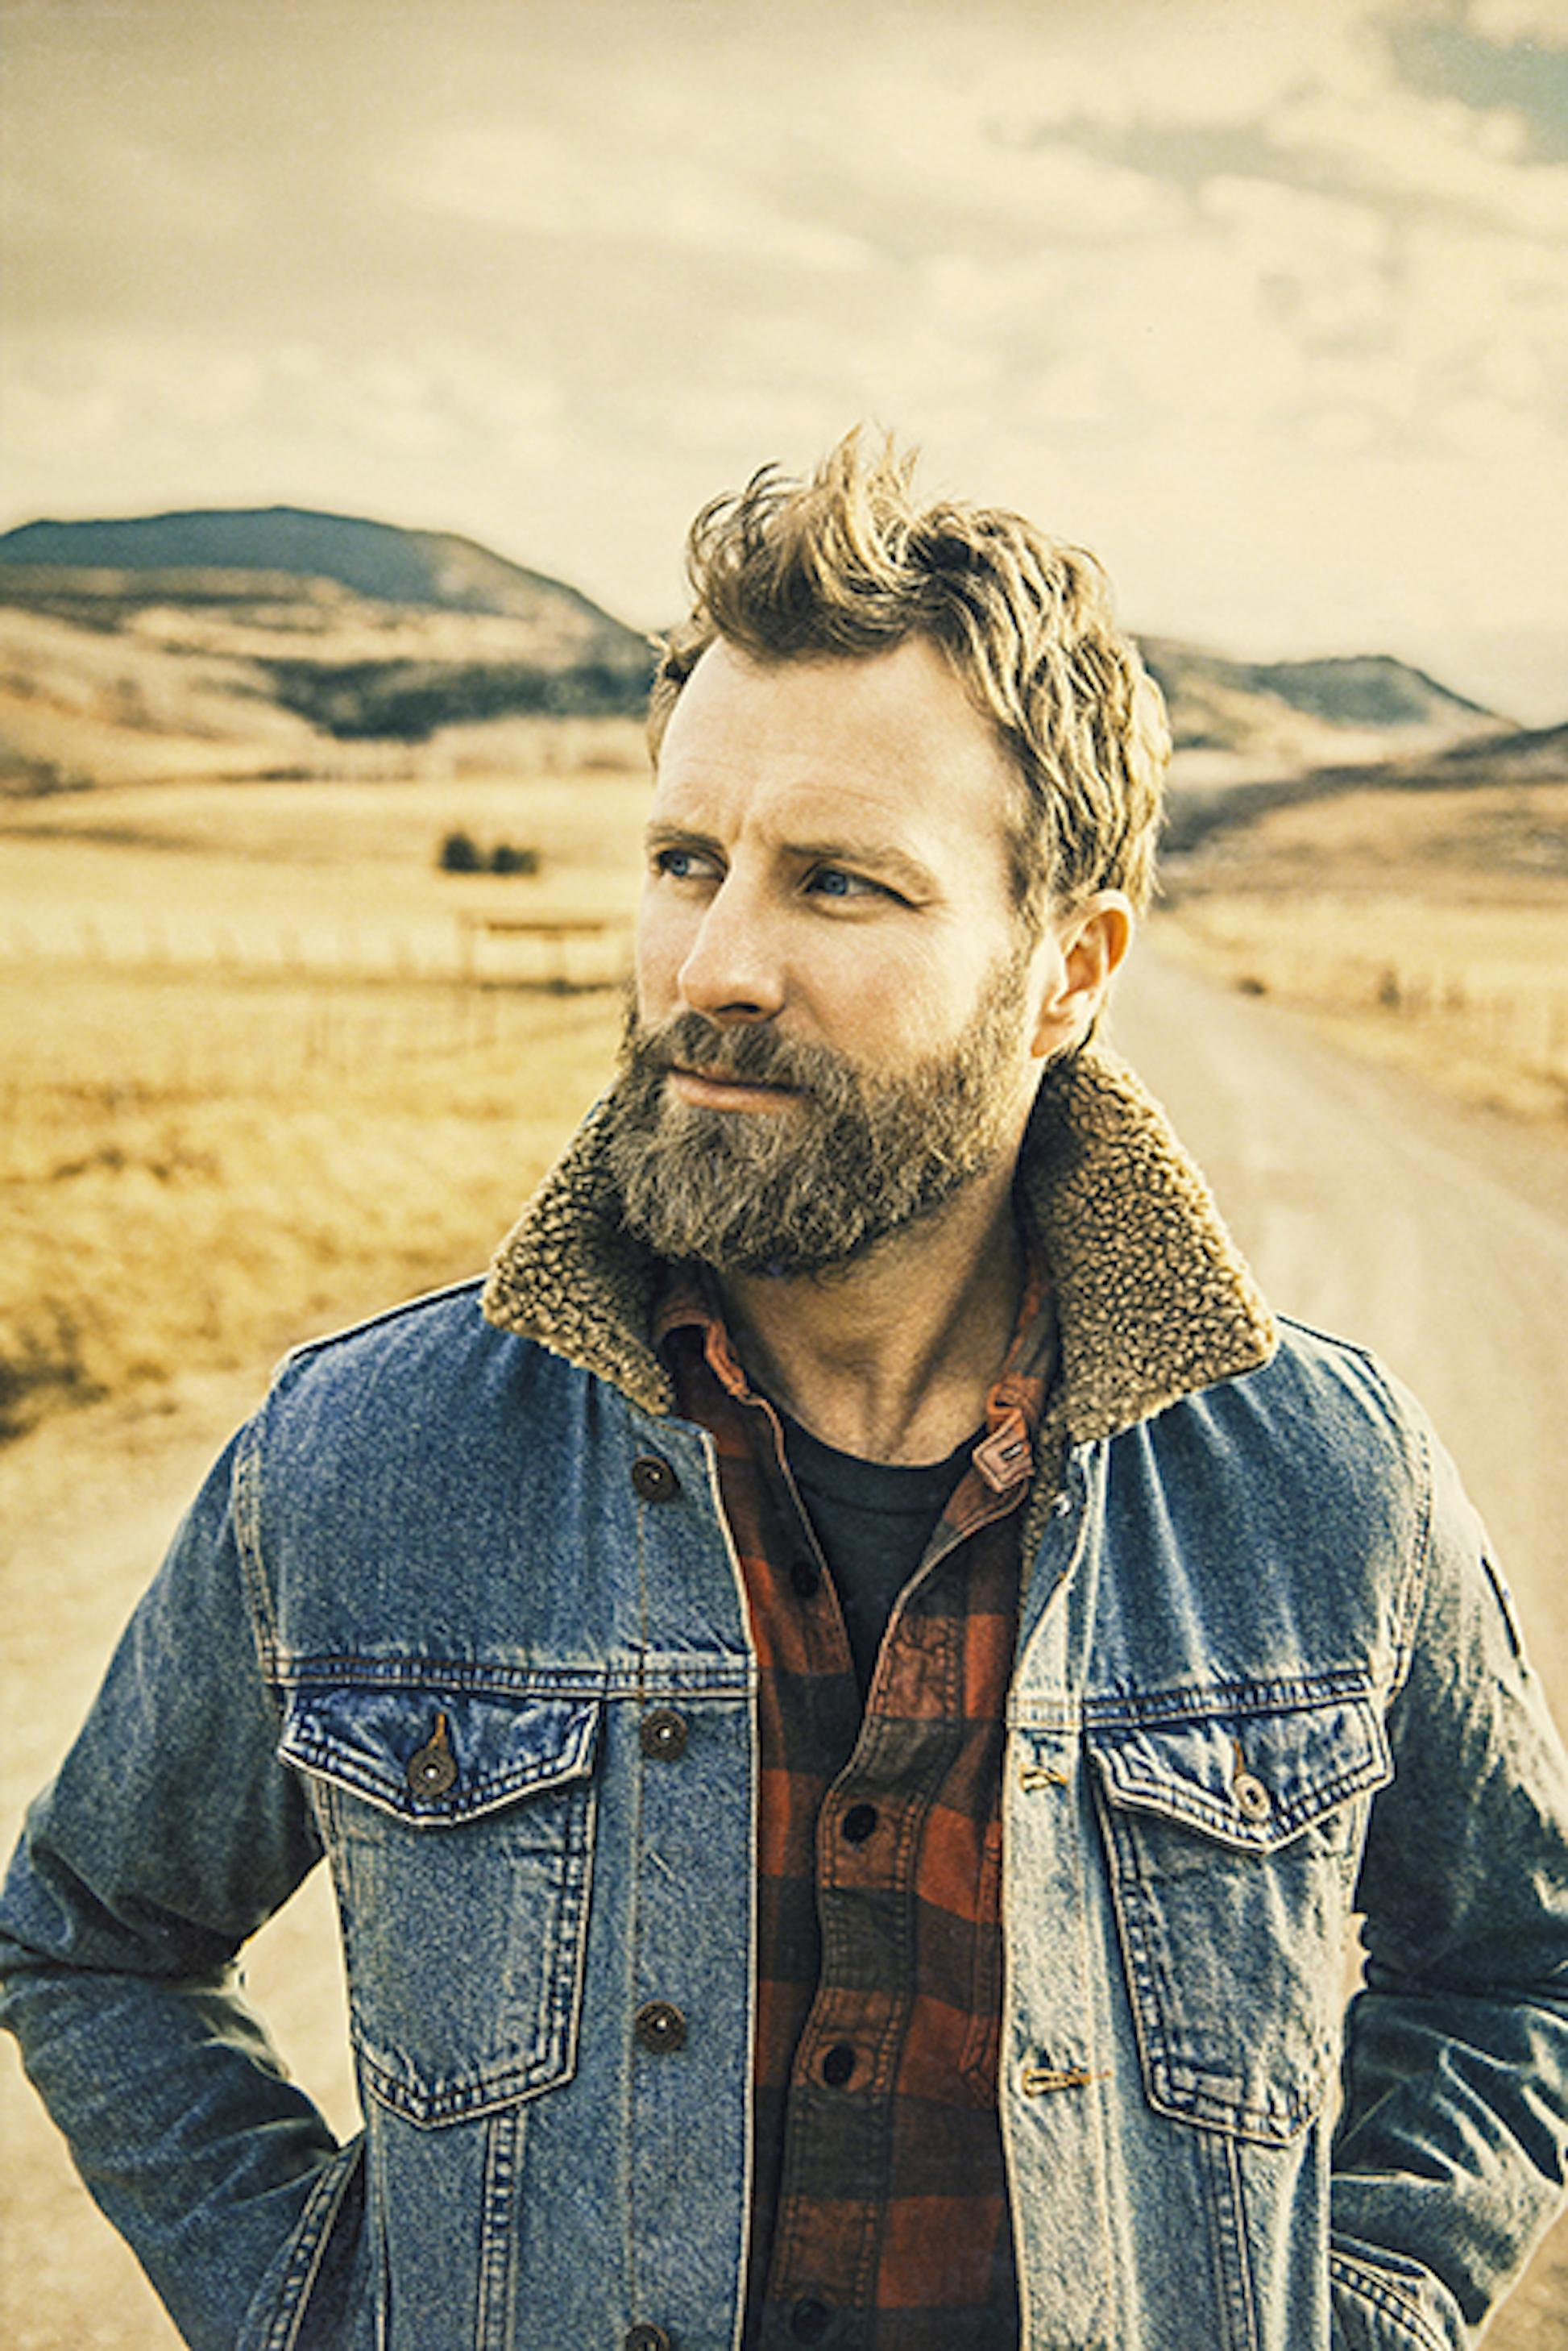 Country singer Dierks Bentley turns to 'The Mountain' of